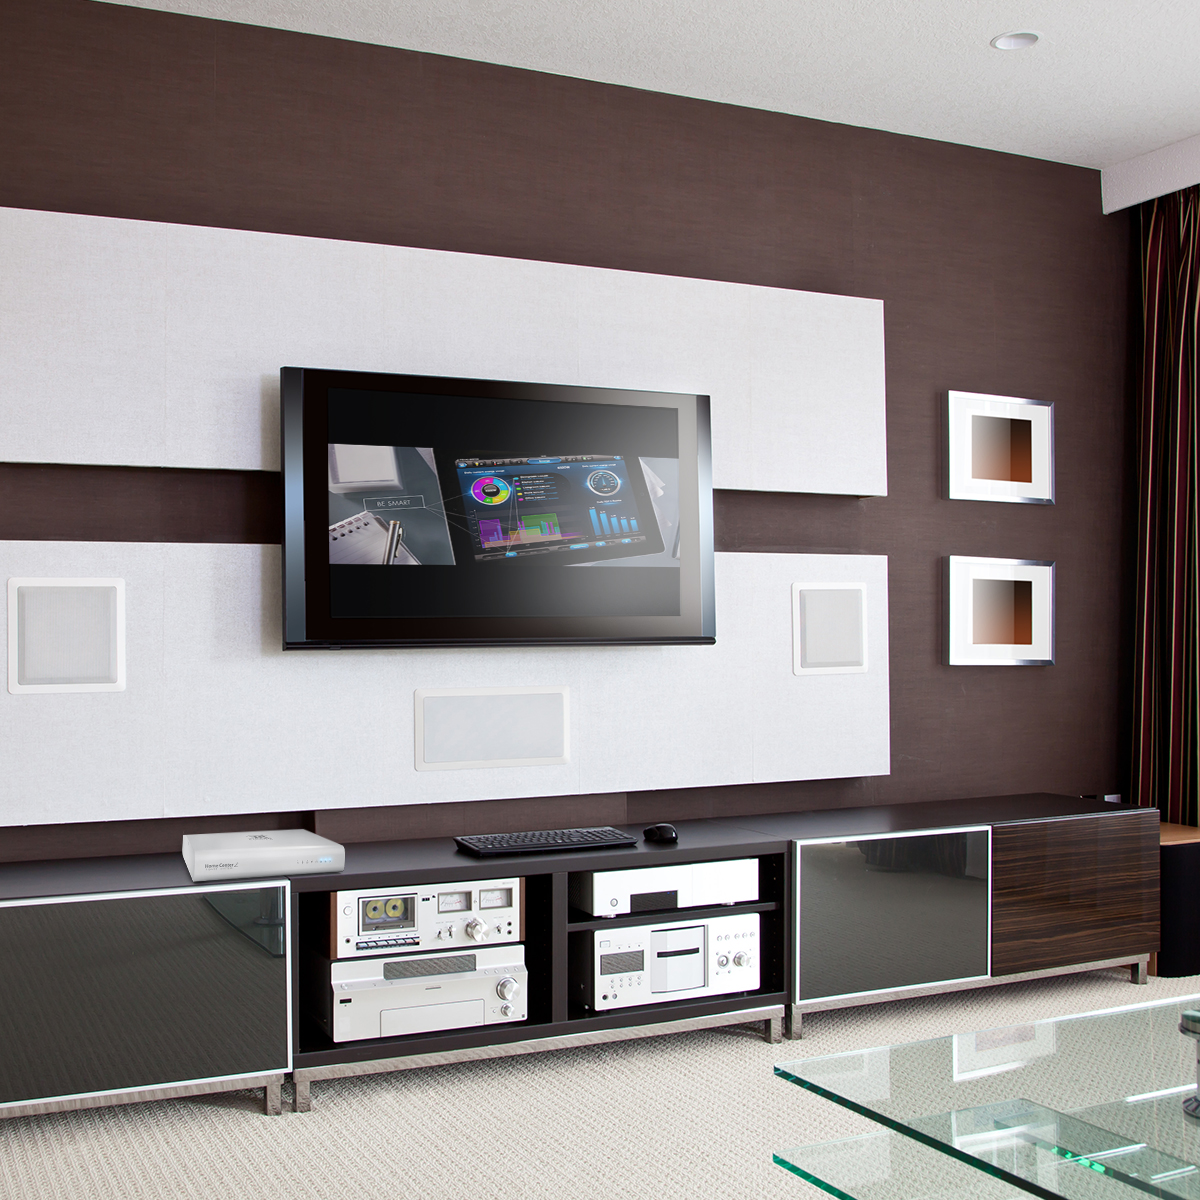 The Multi-zone TV System Feature Image